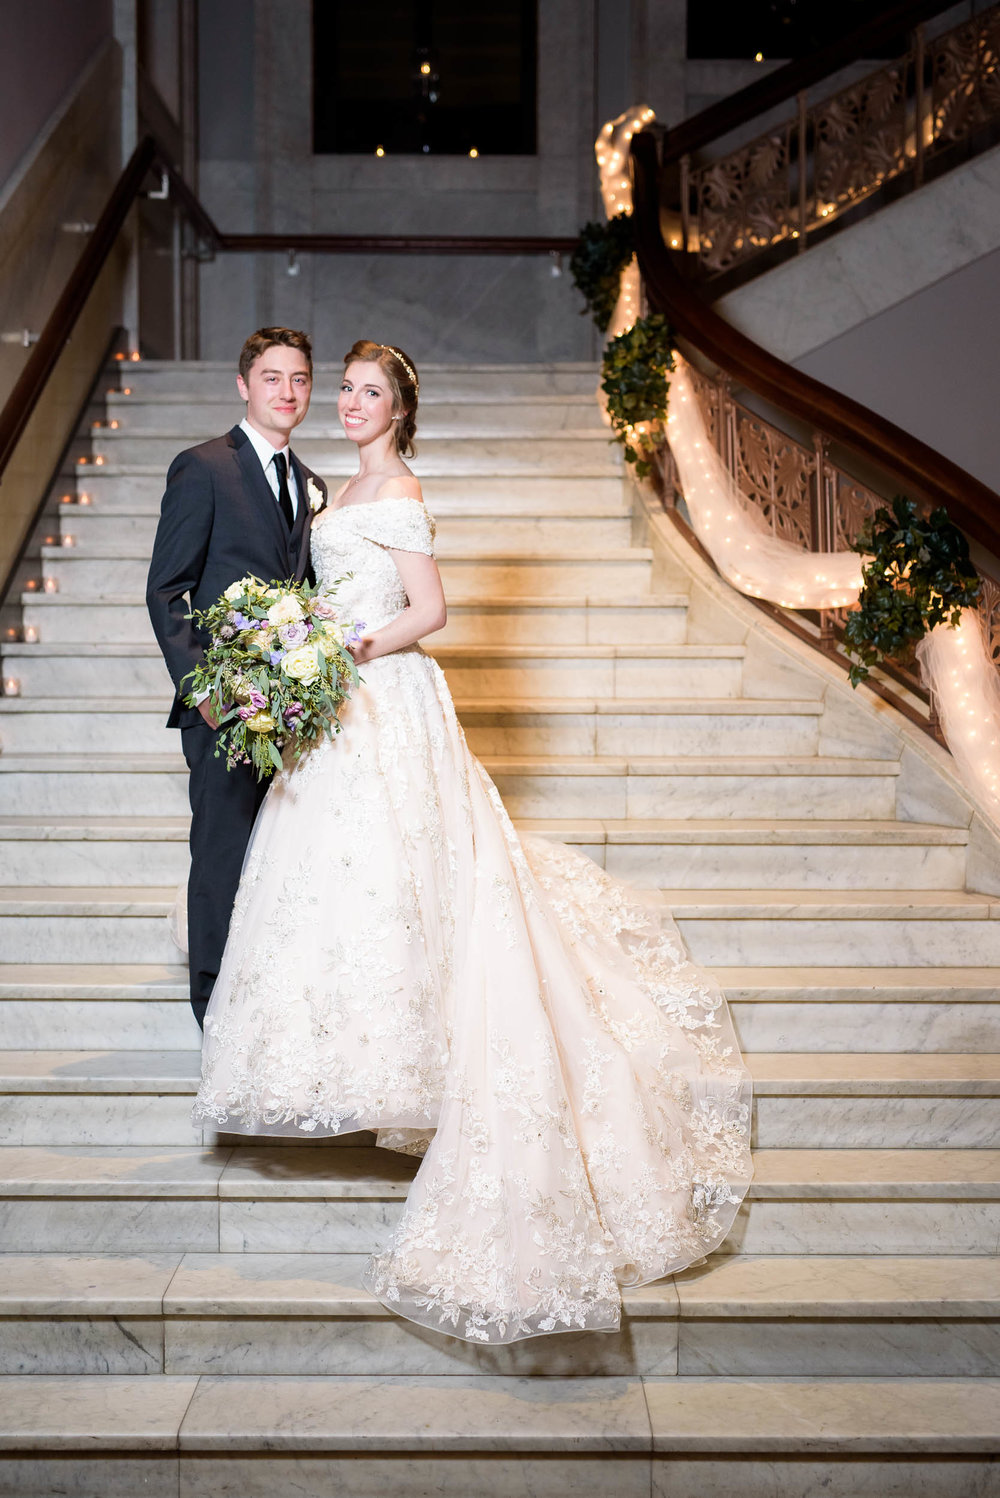 Wedding portrait on the grand staircase during a Newberry Library Chicago wedding.